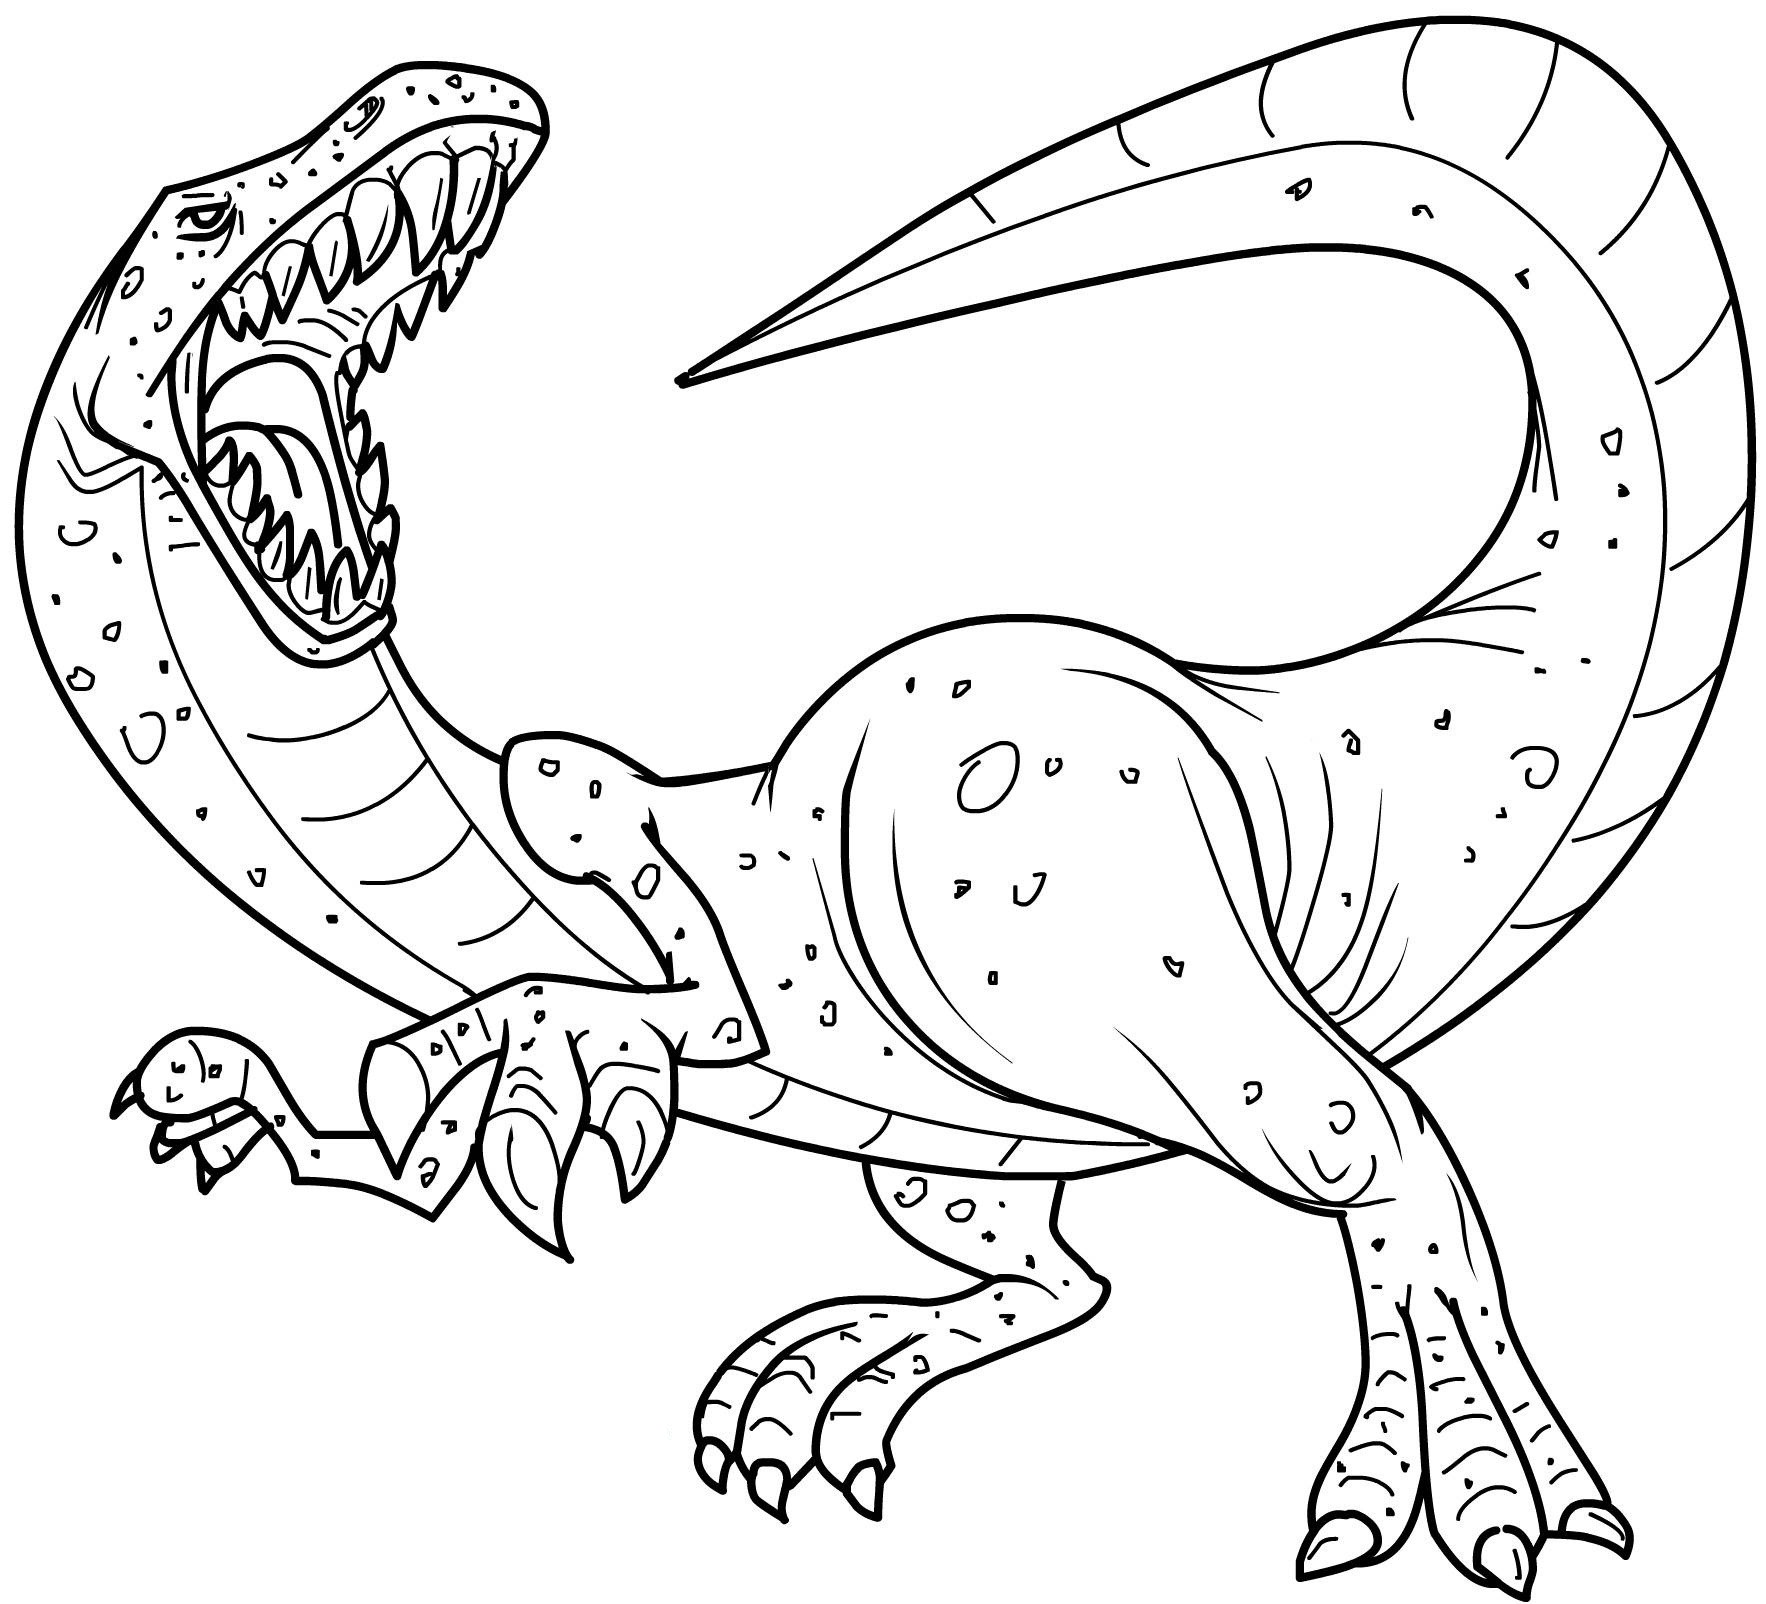 cartoon dinosaur coloring pictures free printable dinosaur coloring pages for kids dinosaur cartoon coloring pictures